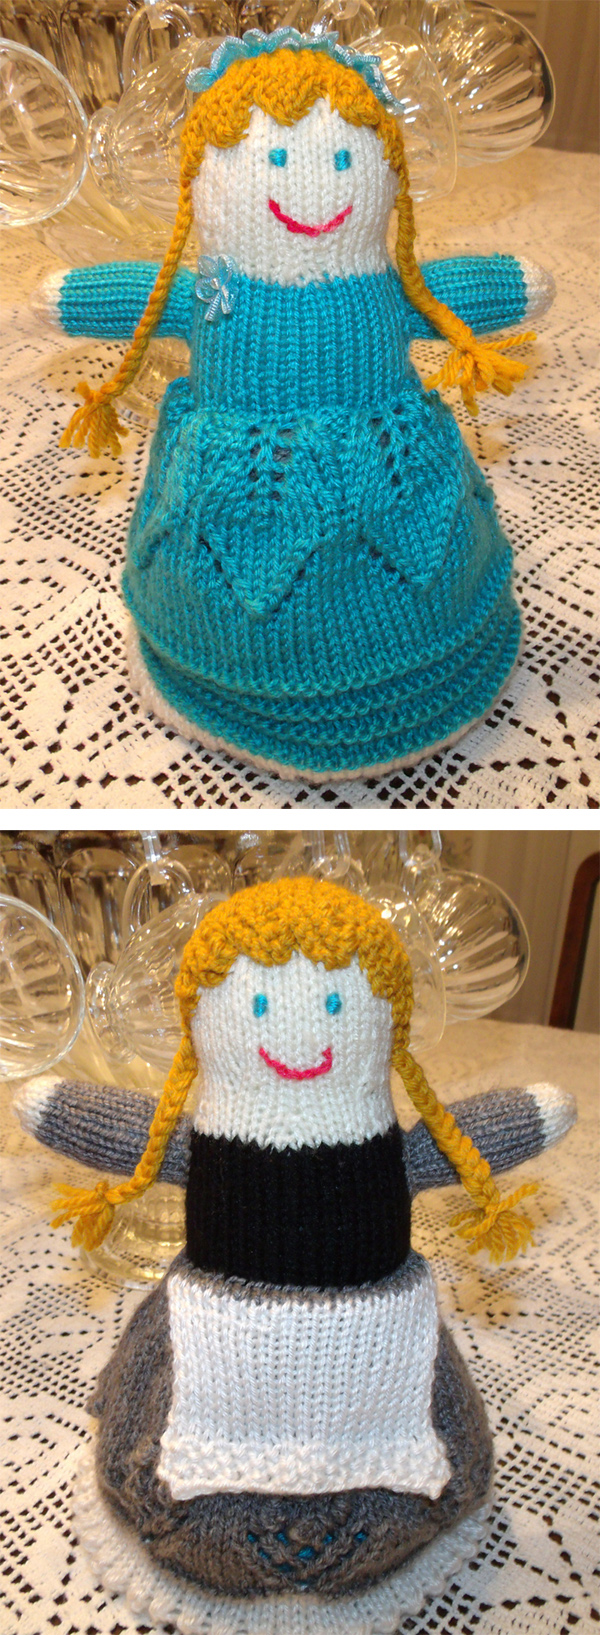 Free Knitting Pattern for Topsy Turvy Doll